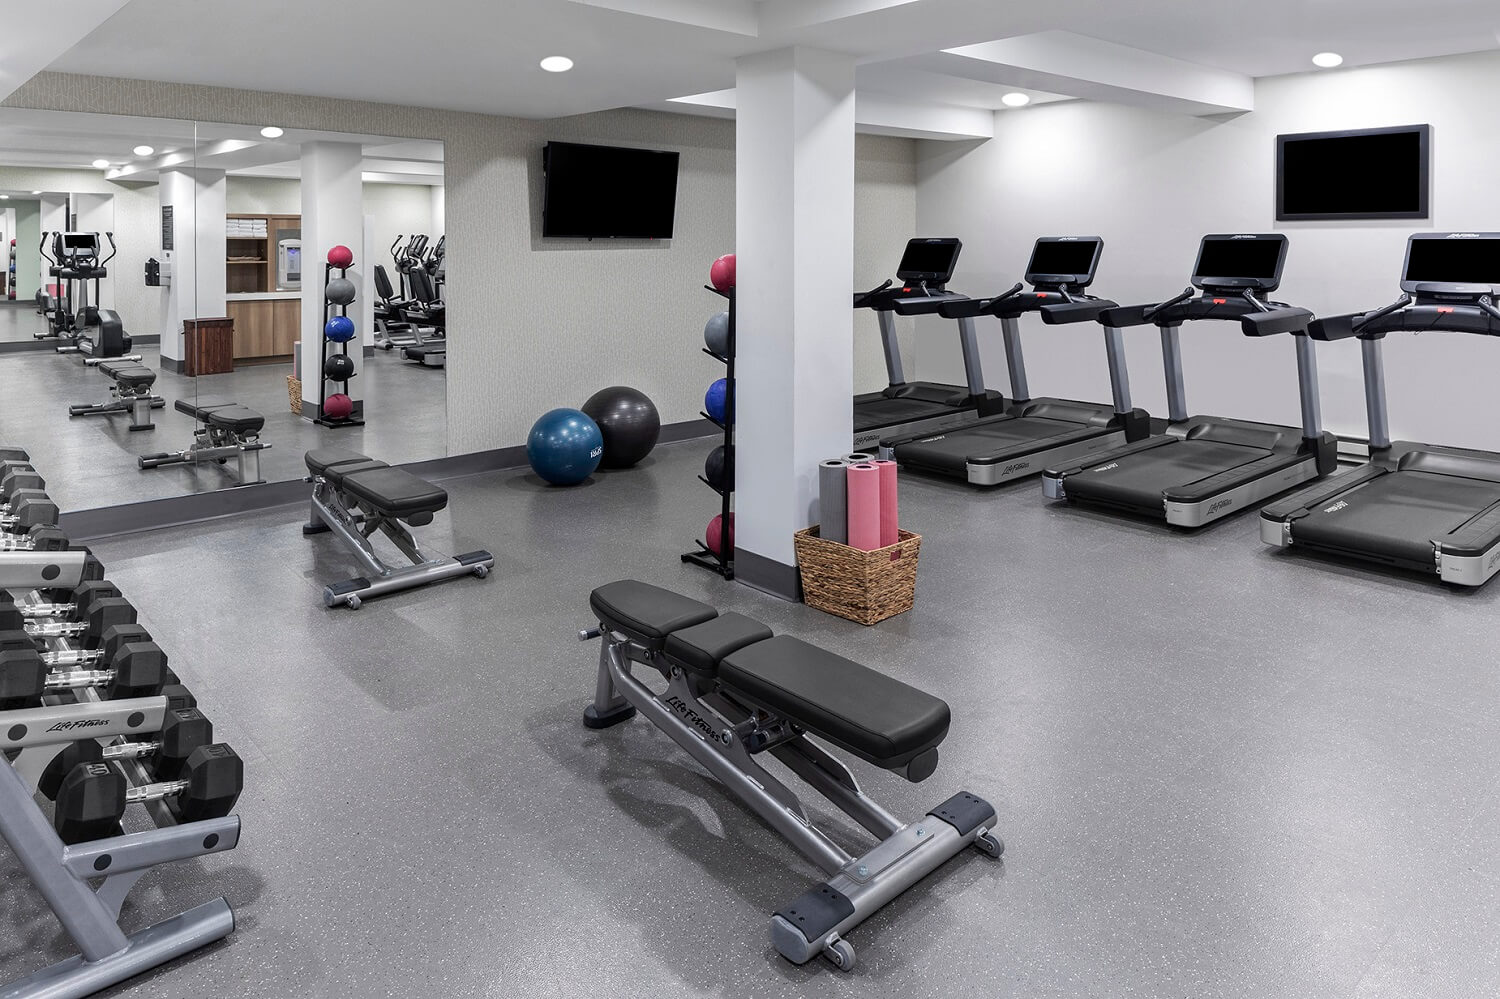 The Wilson Hotel fitness center